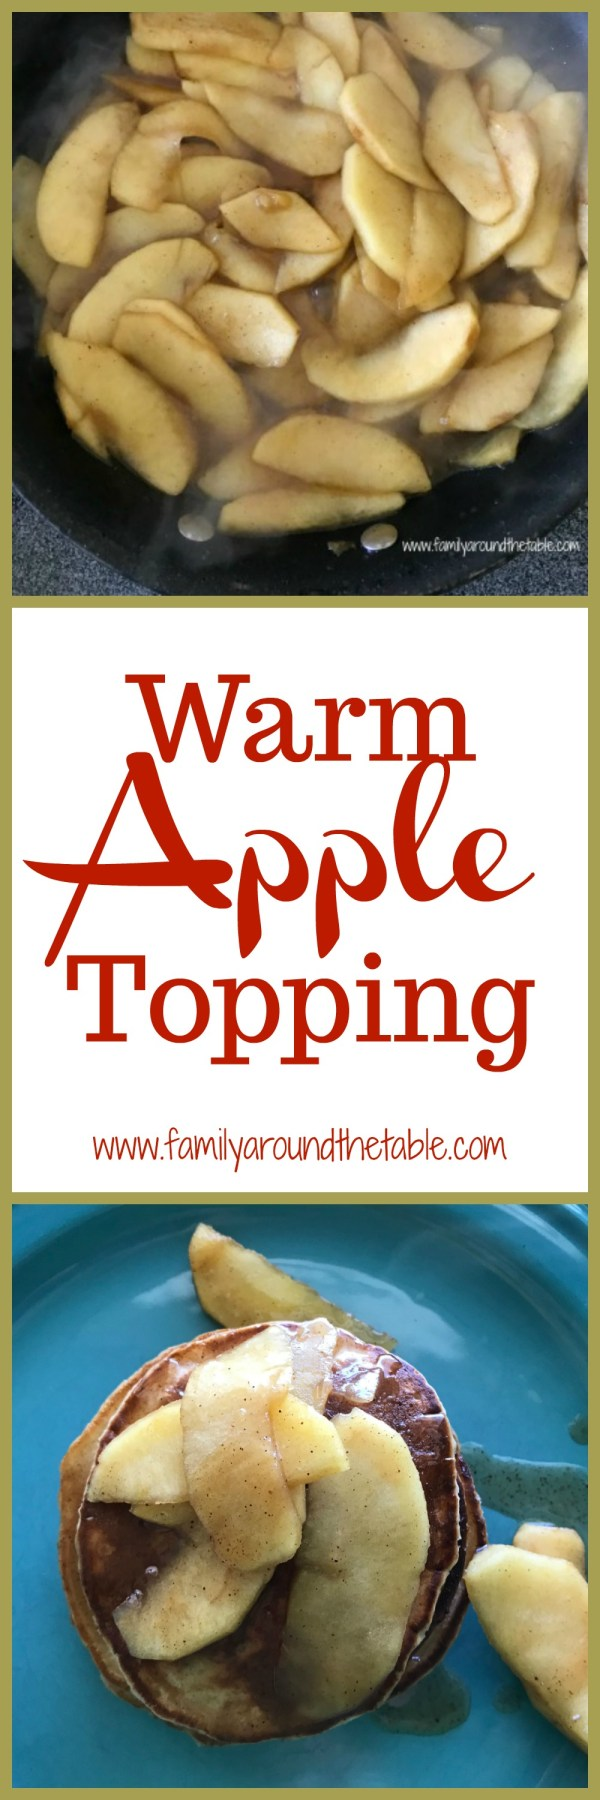 Serve warm apple topping with ice cream, pancakes or waffles. #AppleWeek